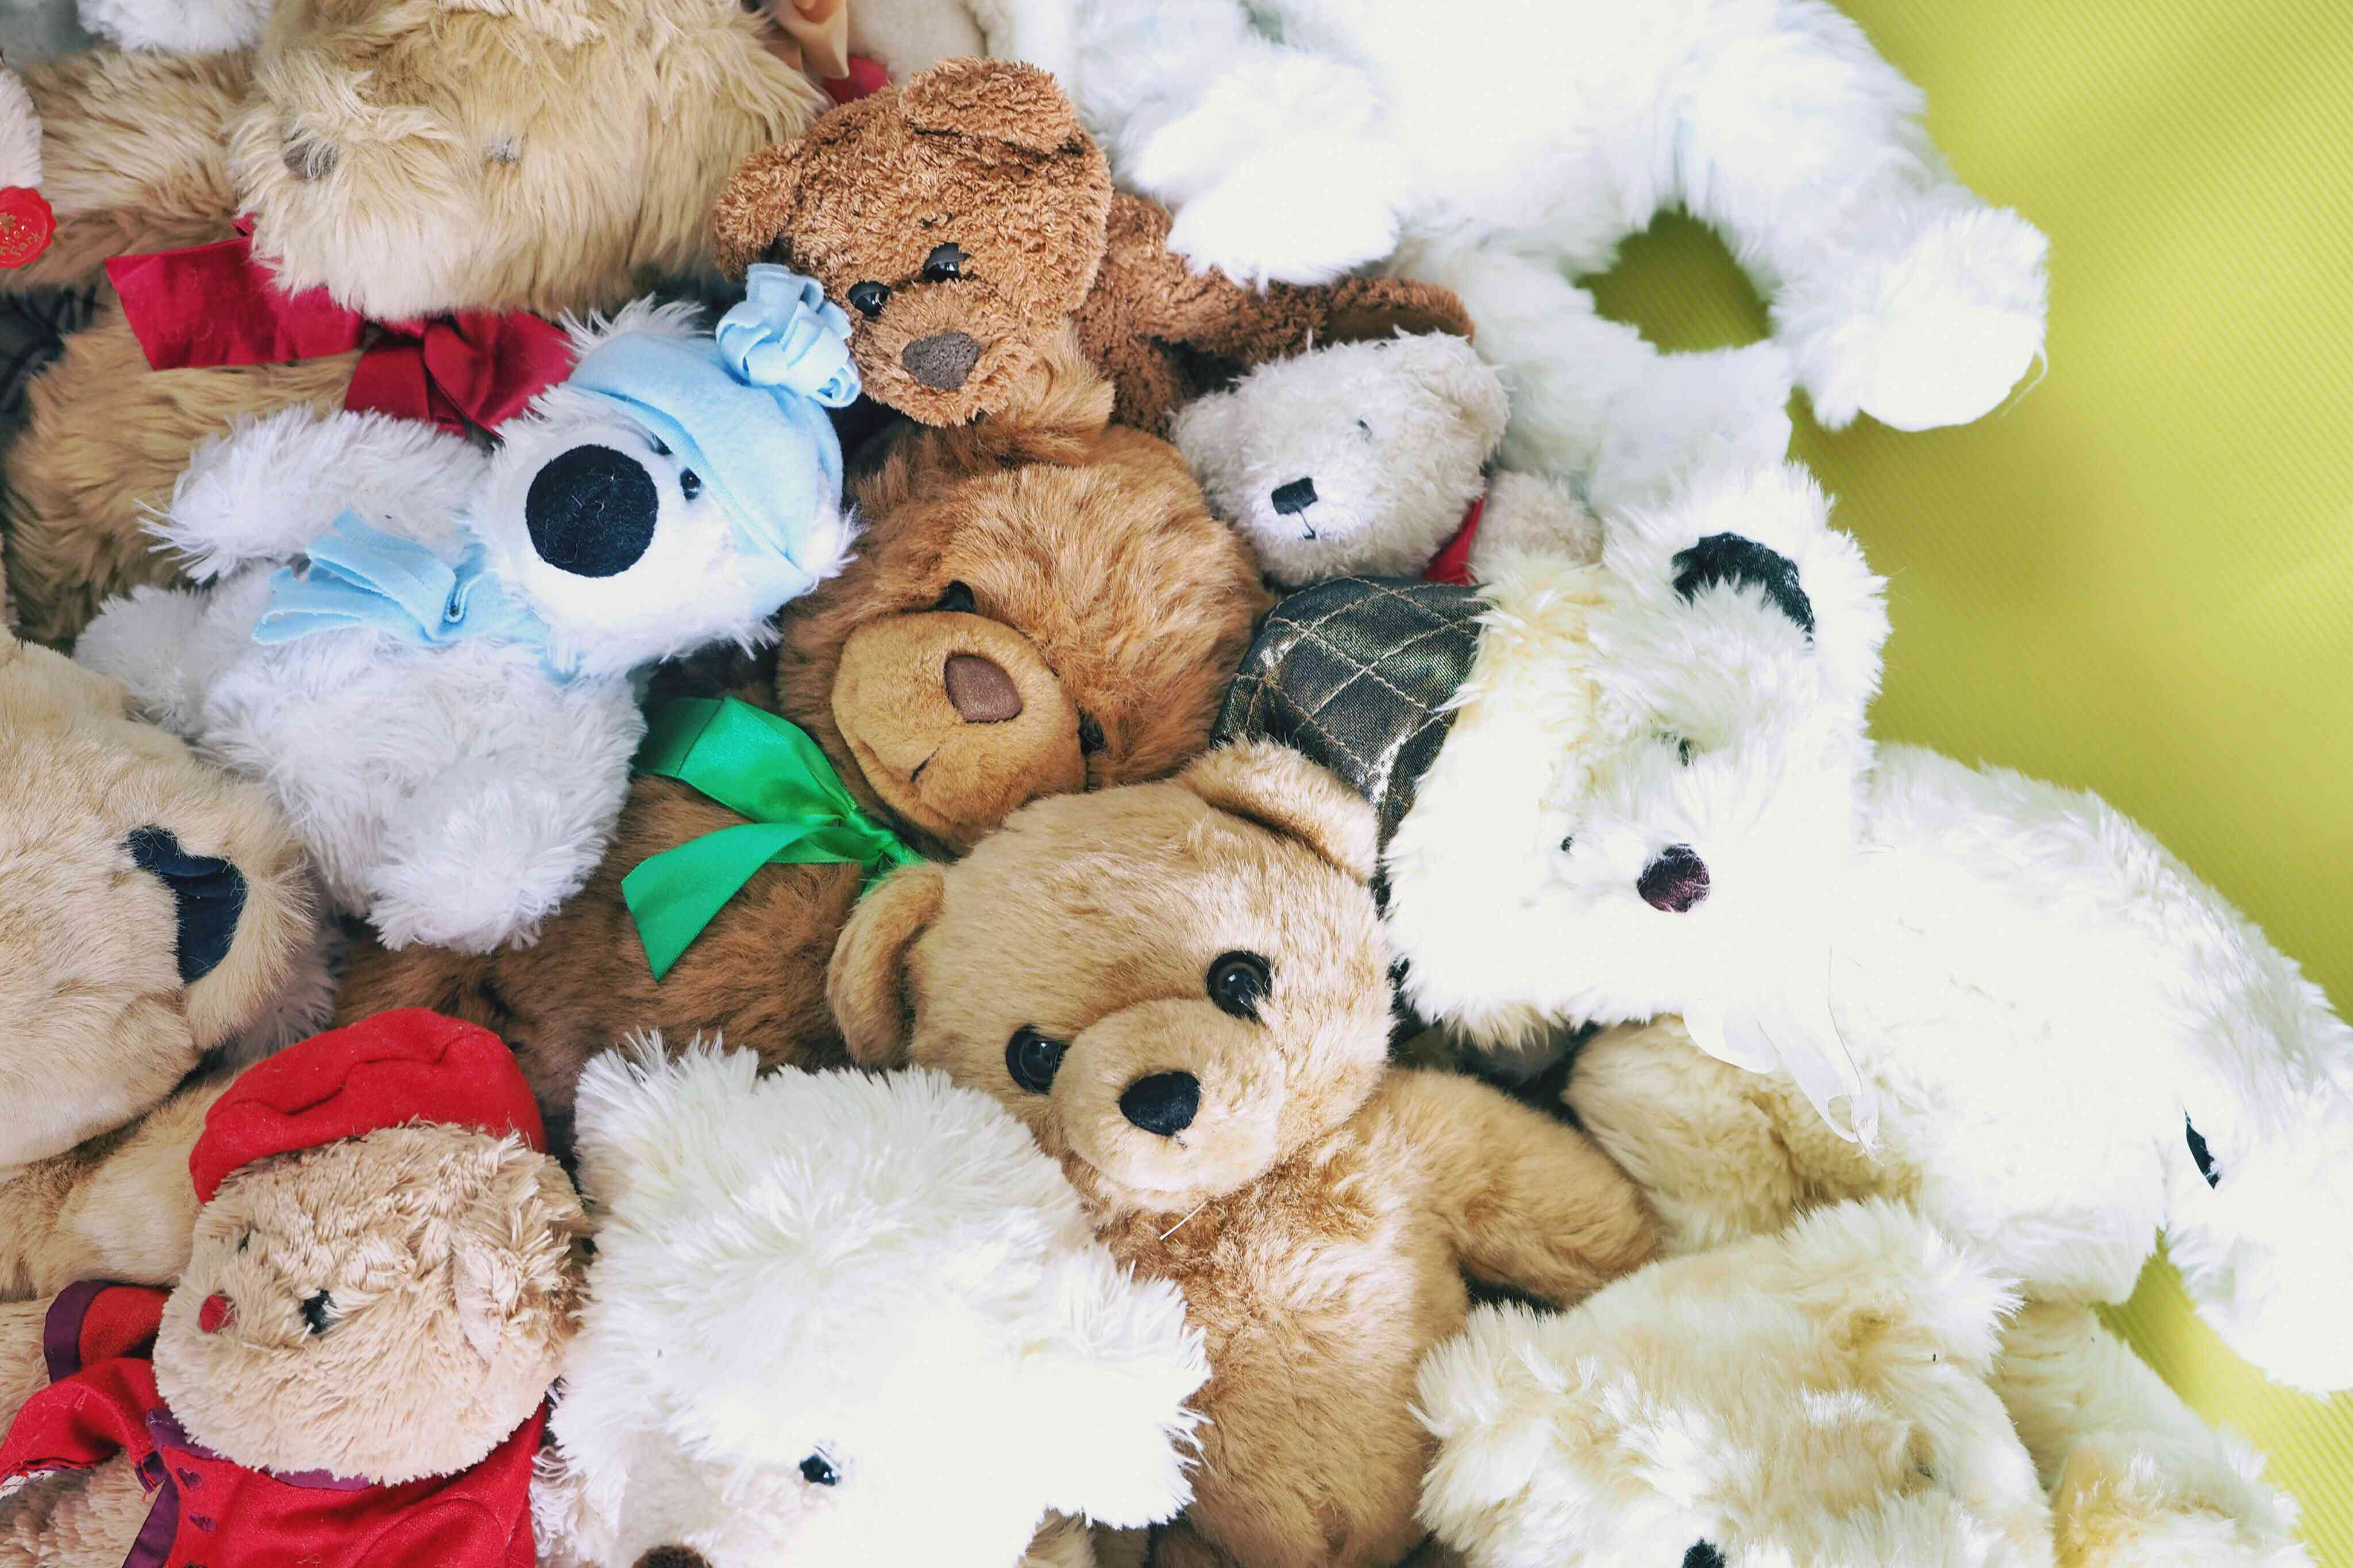 Directly Above Shot Of Stuffed Toys